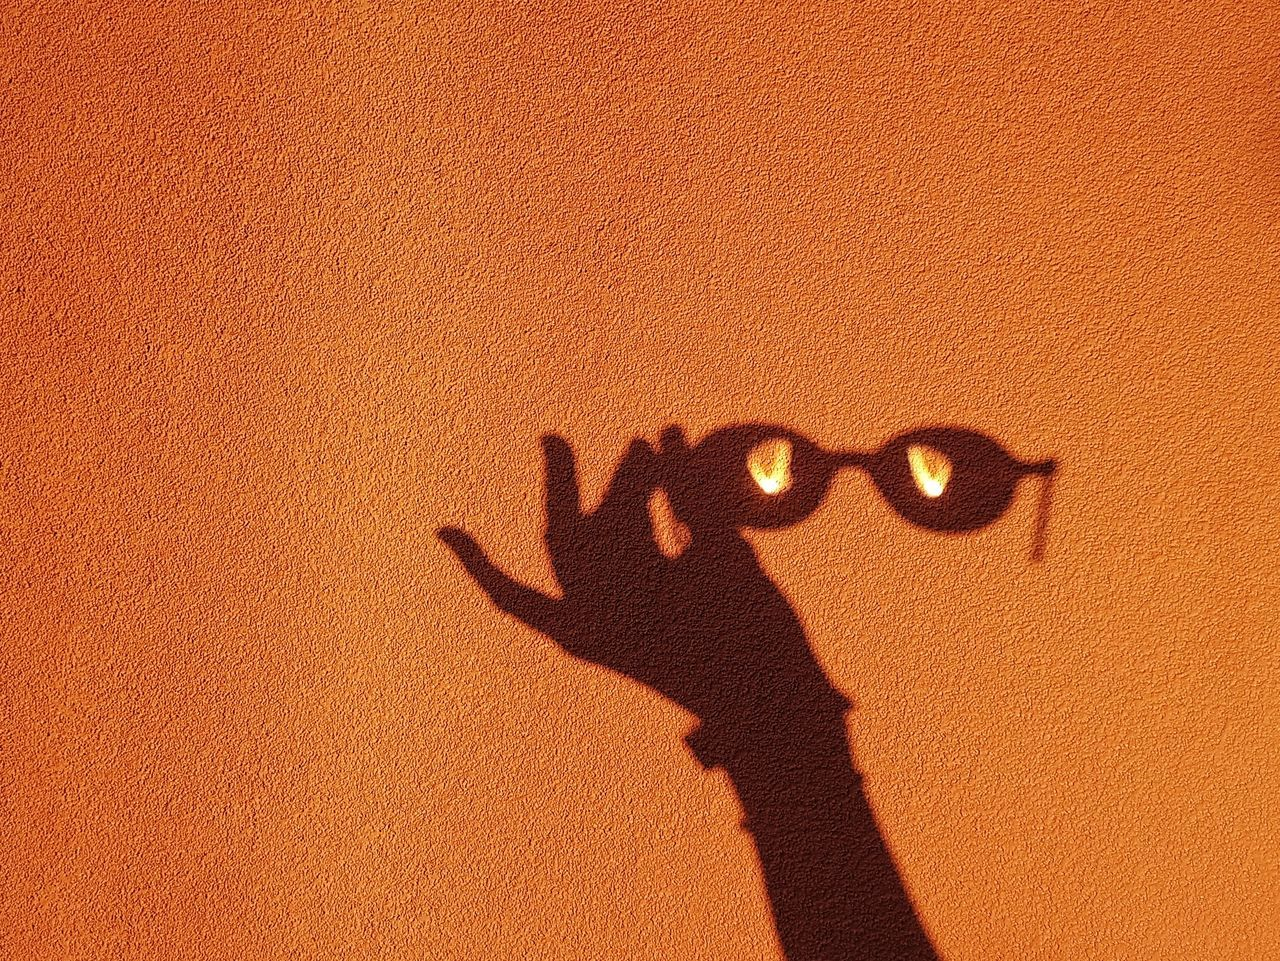 Shadow of hand holding sunglasses on orange wall during sunny day